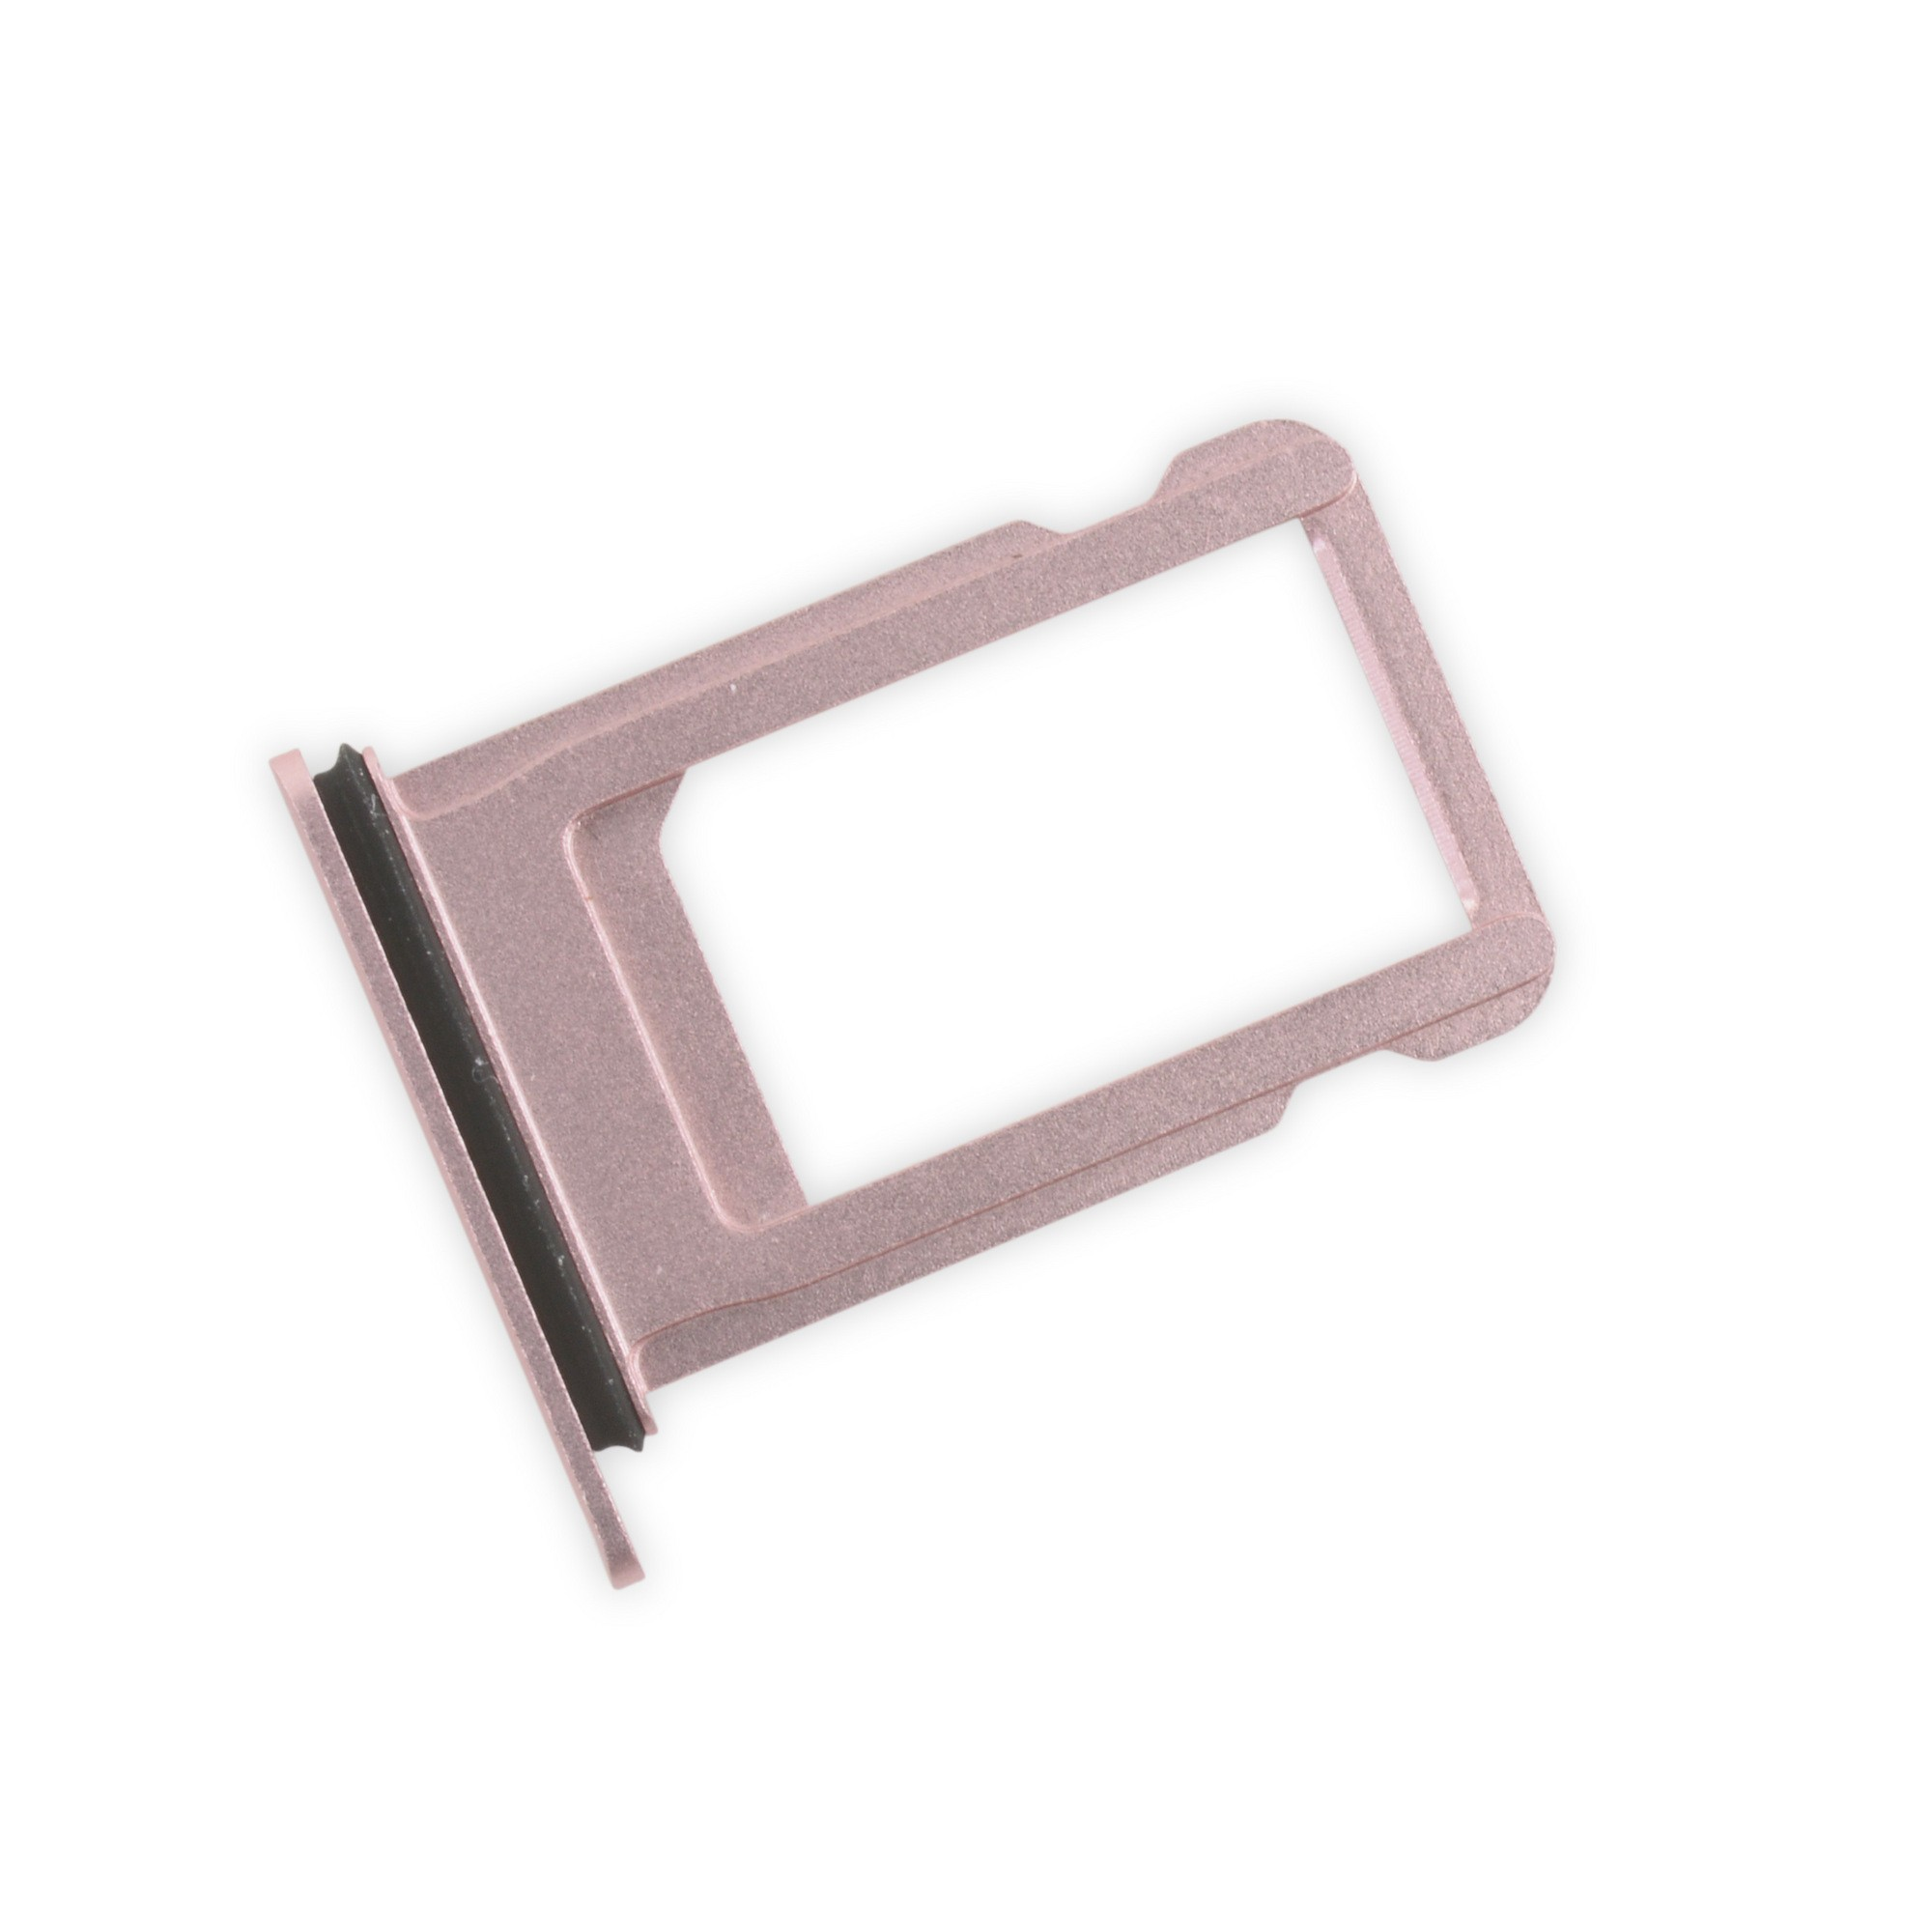 iPhone 7 SIM Card Tray, Brand New - Rose, I7A-017